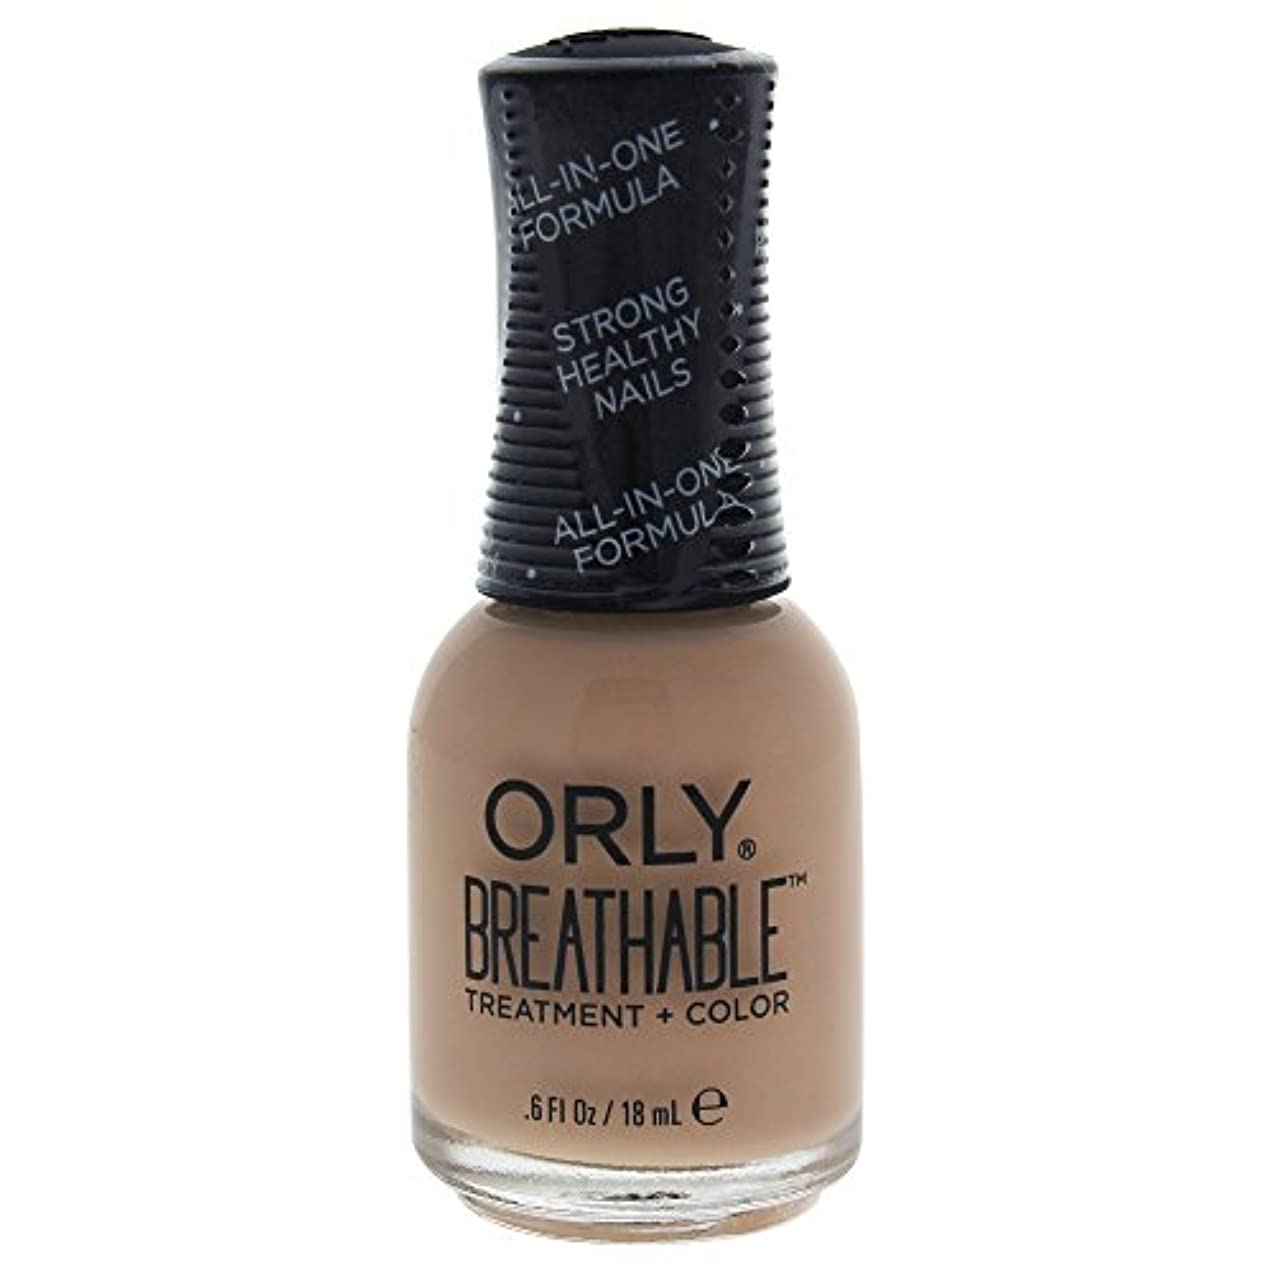 Orly Breathable Treatment + Color Nail Lacquer - Manuka Me Crazy - 0.6oz / 18ml